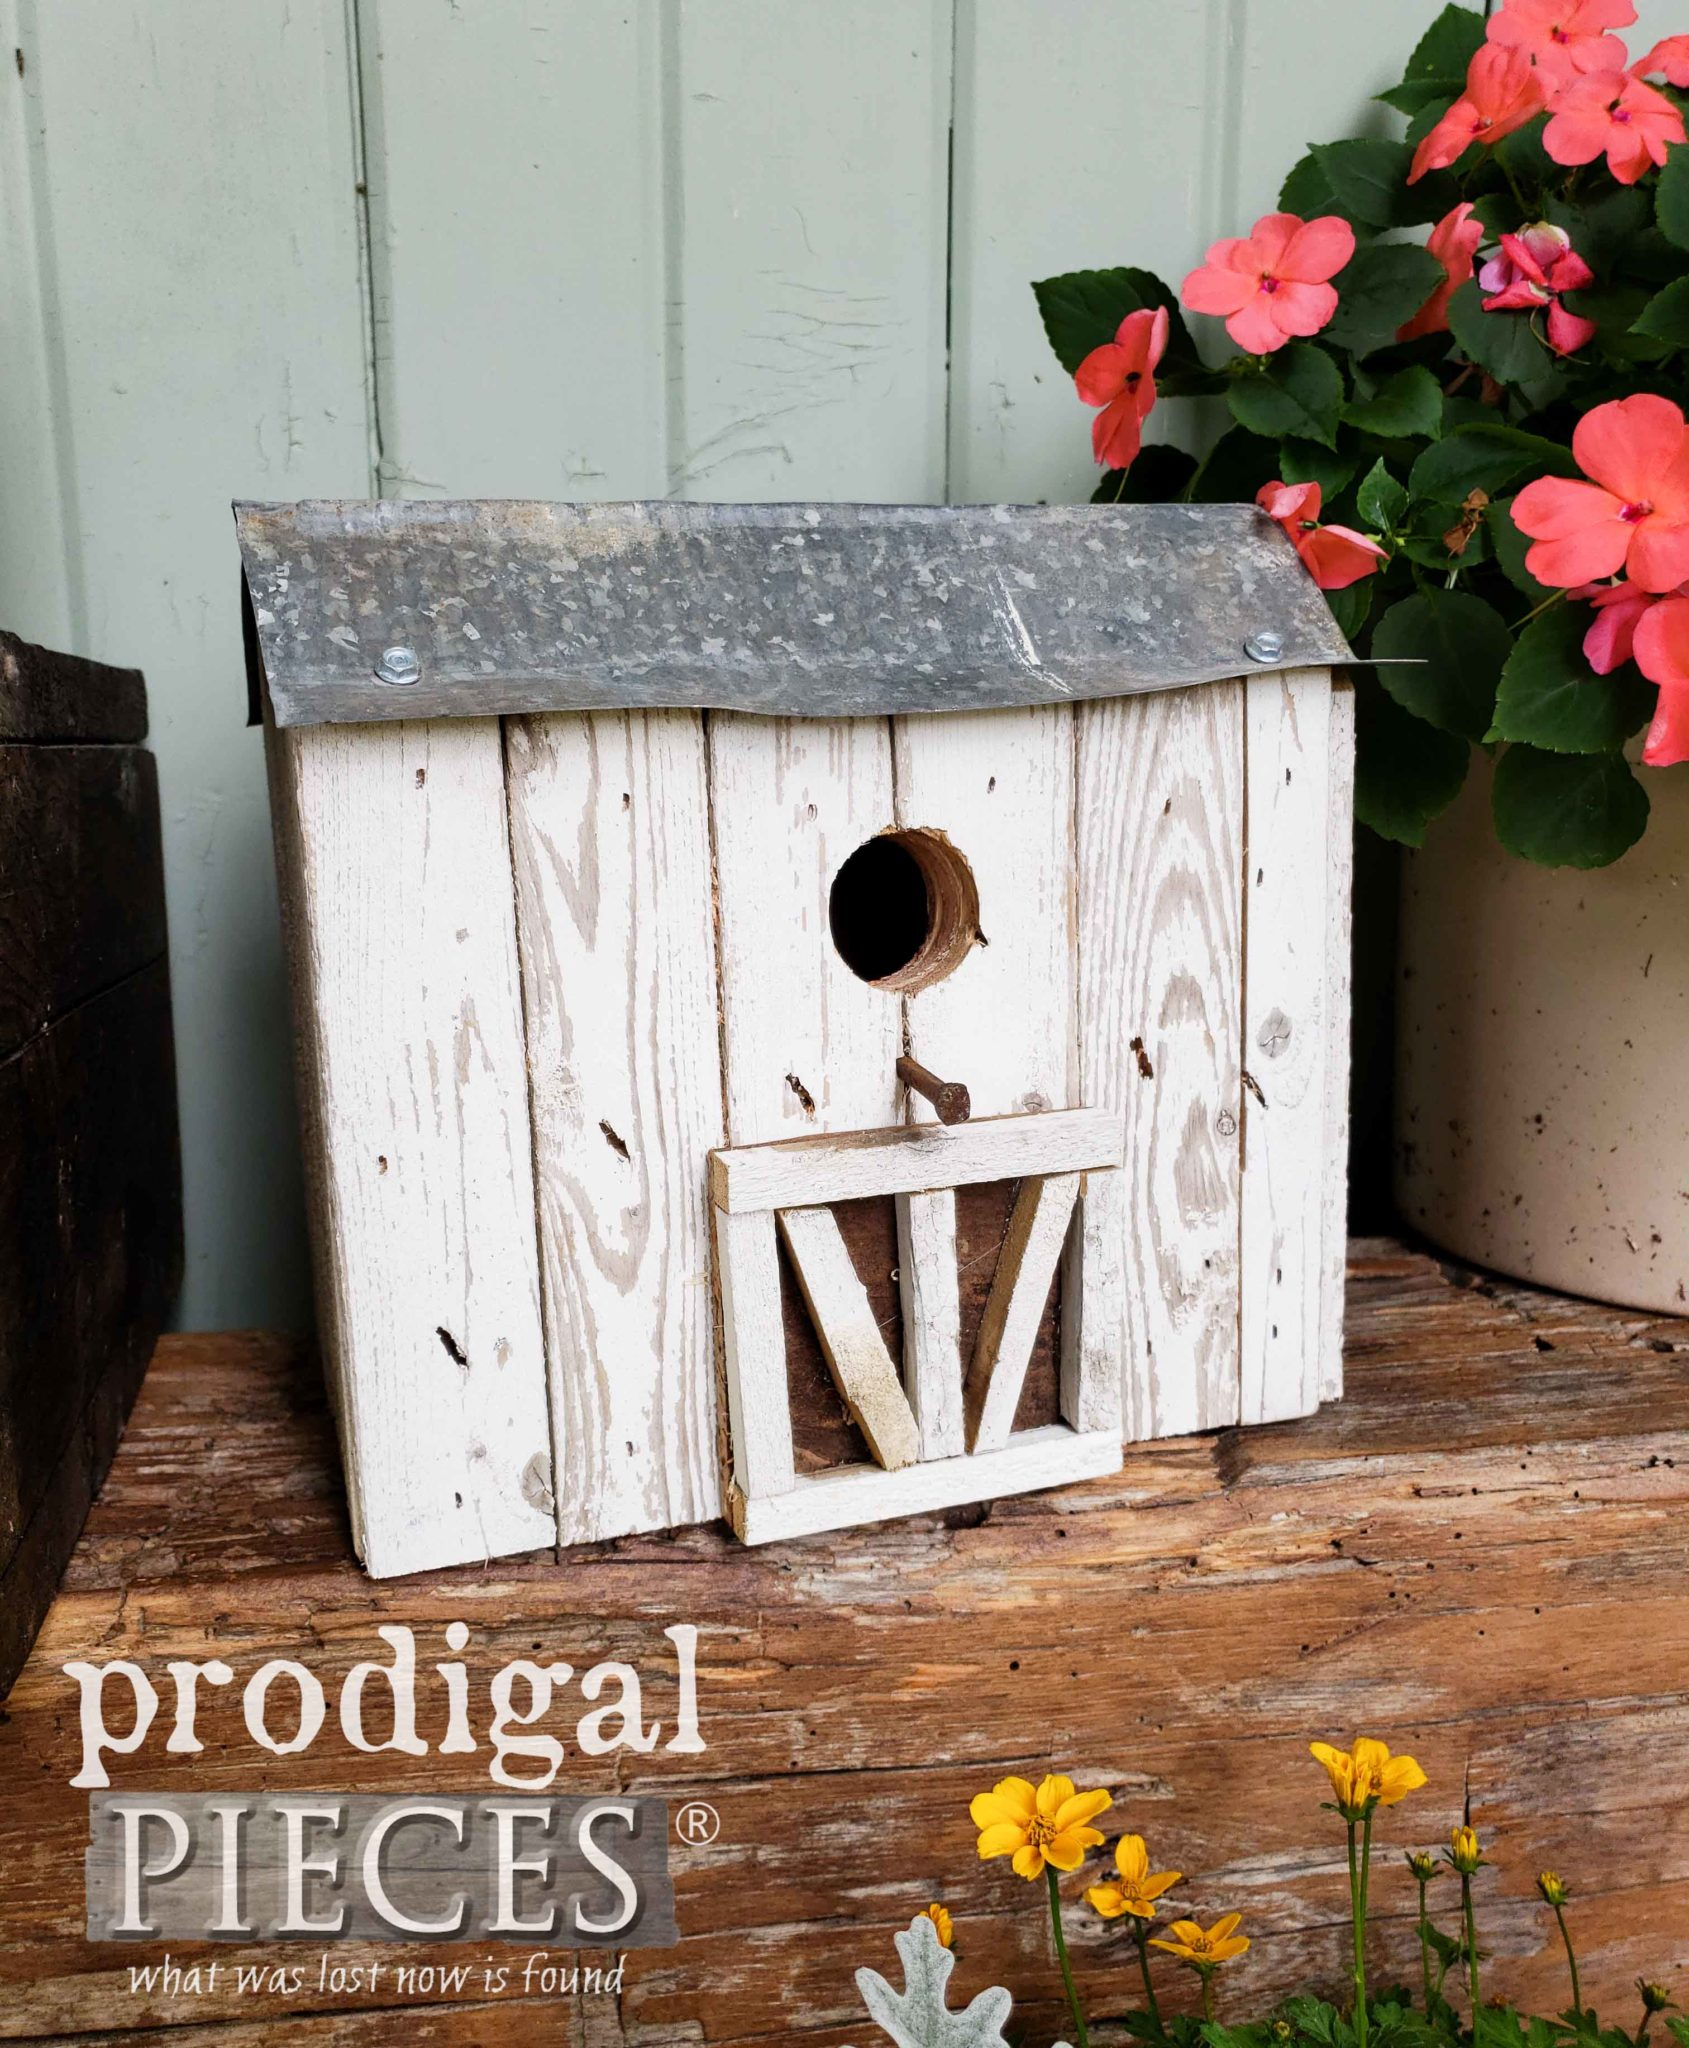 Handmade Miniature Barn Birdhouse Created from Reclaimed Materials by Larissa of Prodigal Pieces | prodigalpieces.com